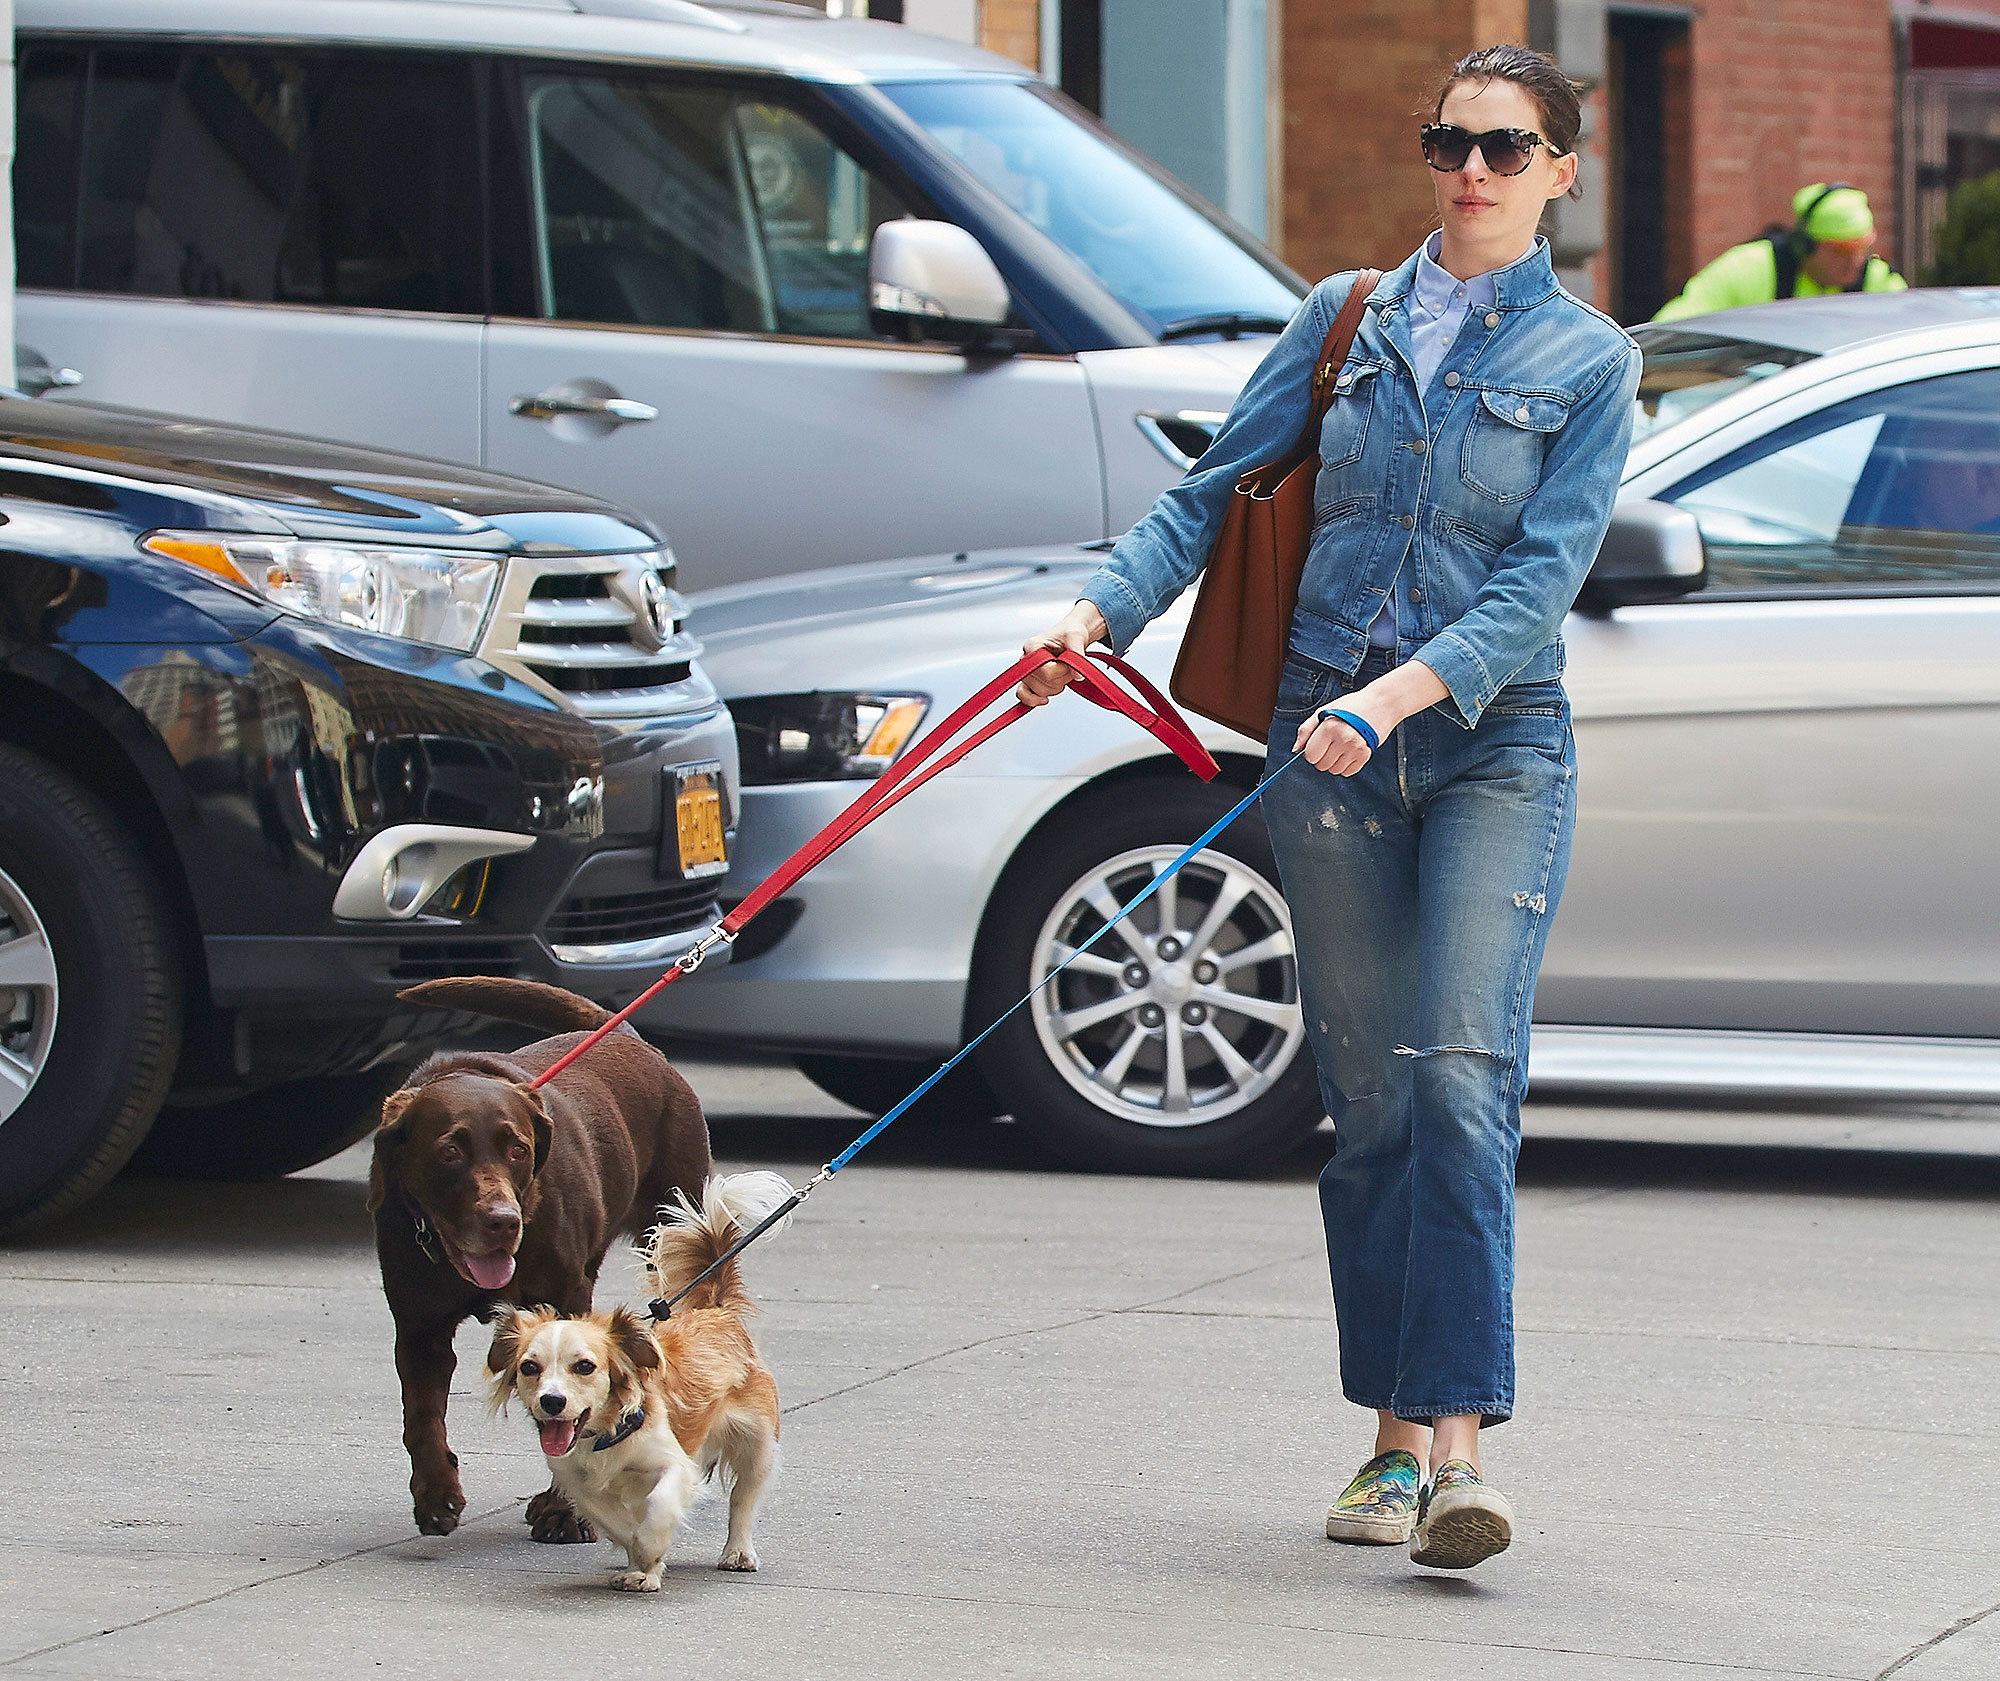 Anne Hathaway spotted wearing double denim while walking her two dogs Esmeralda and Edward in the East Village neighborhood of NYC